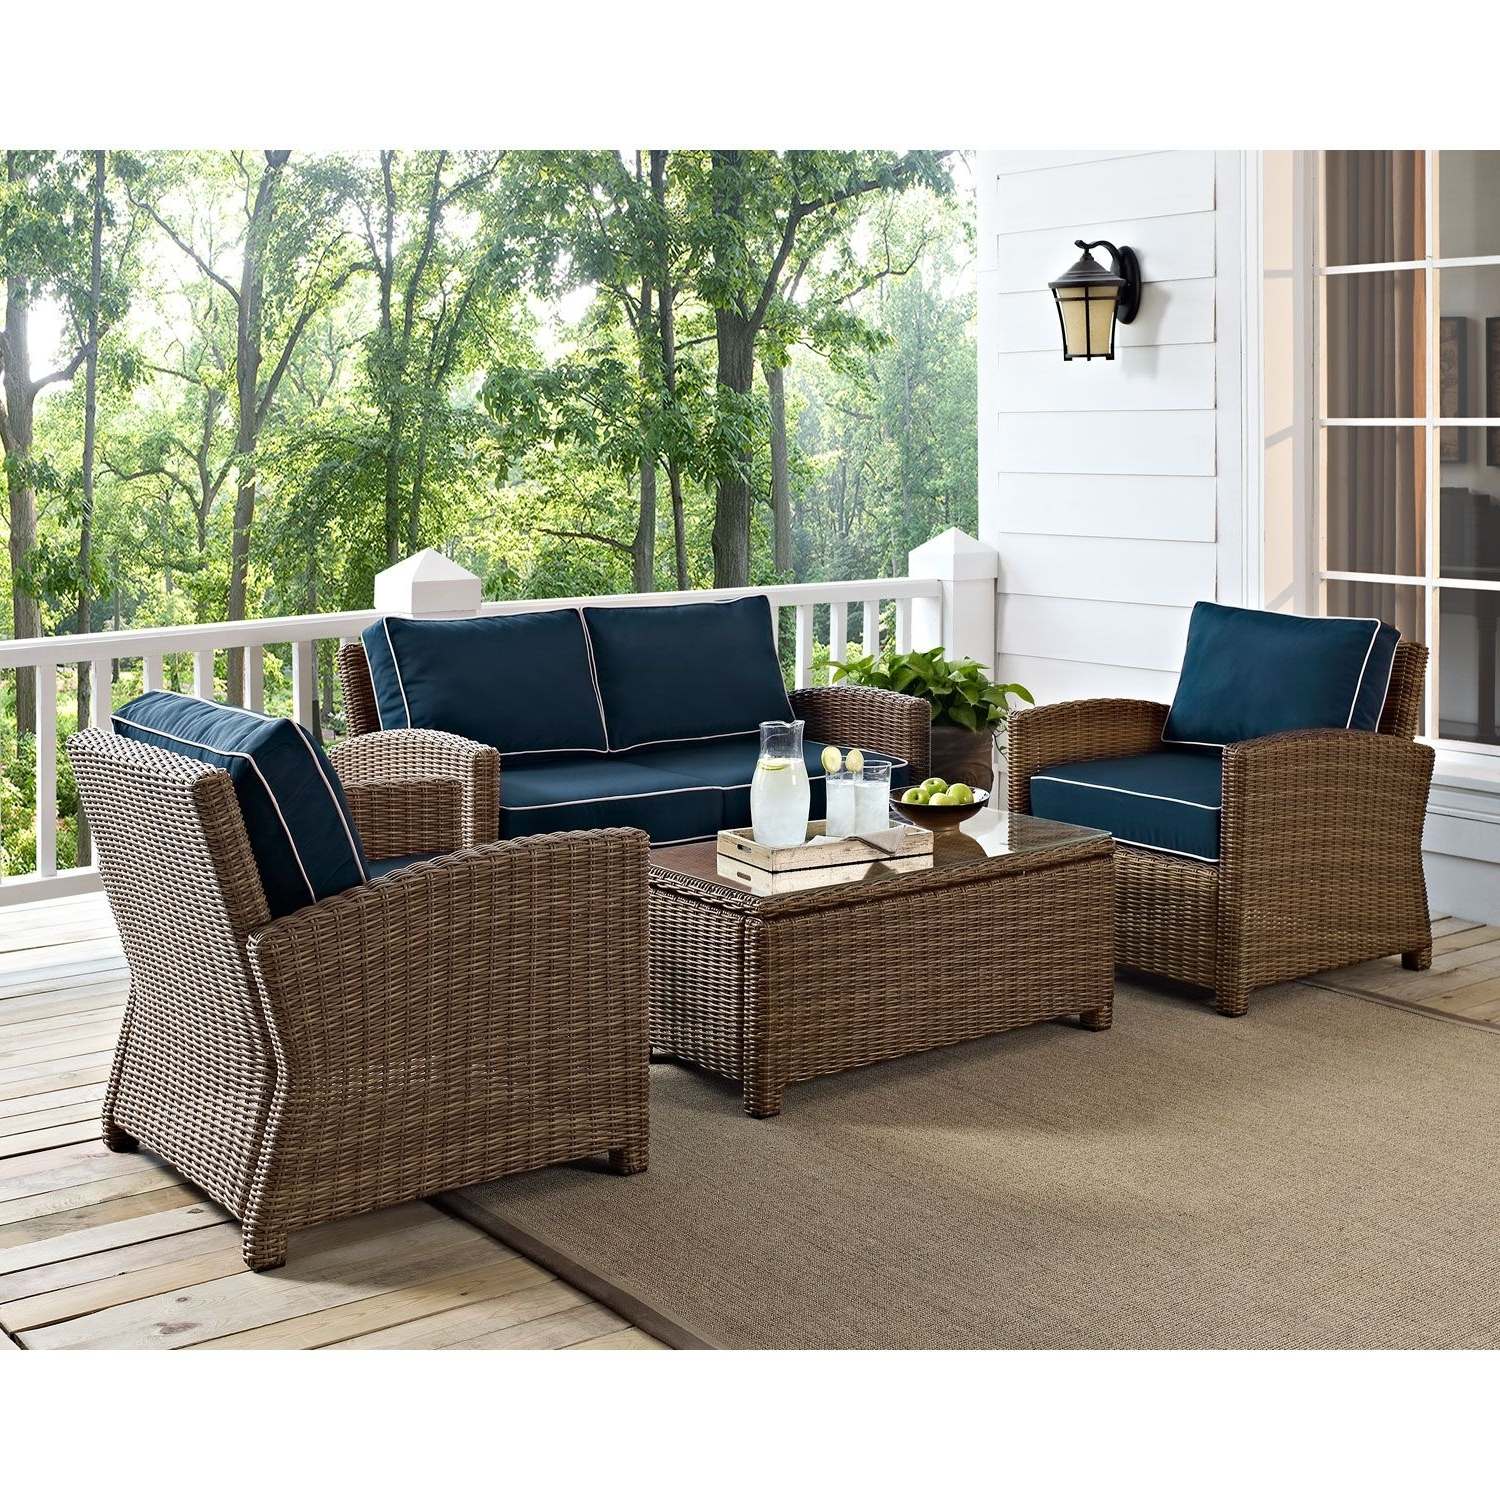 Patio Conversation Sets With Blue Cushions Regarding Current Crosley Furniture Bradenton 4 Piece Outdoor Wicker Seating Set With (View 4 of 15)